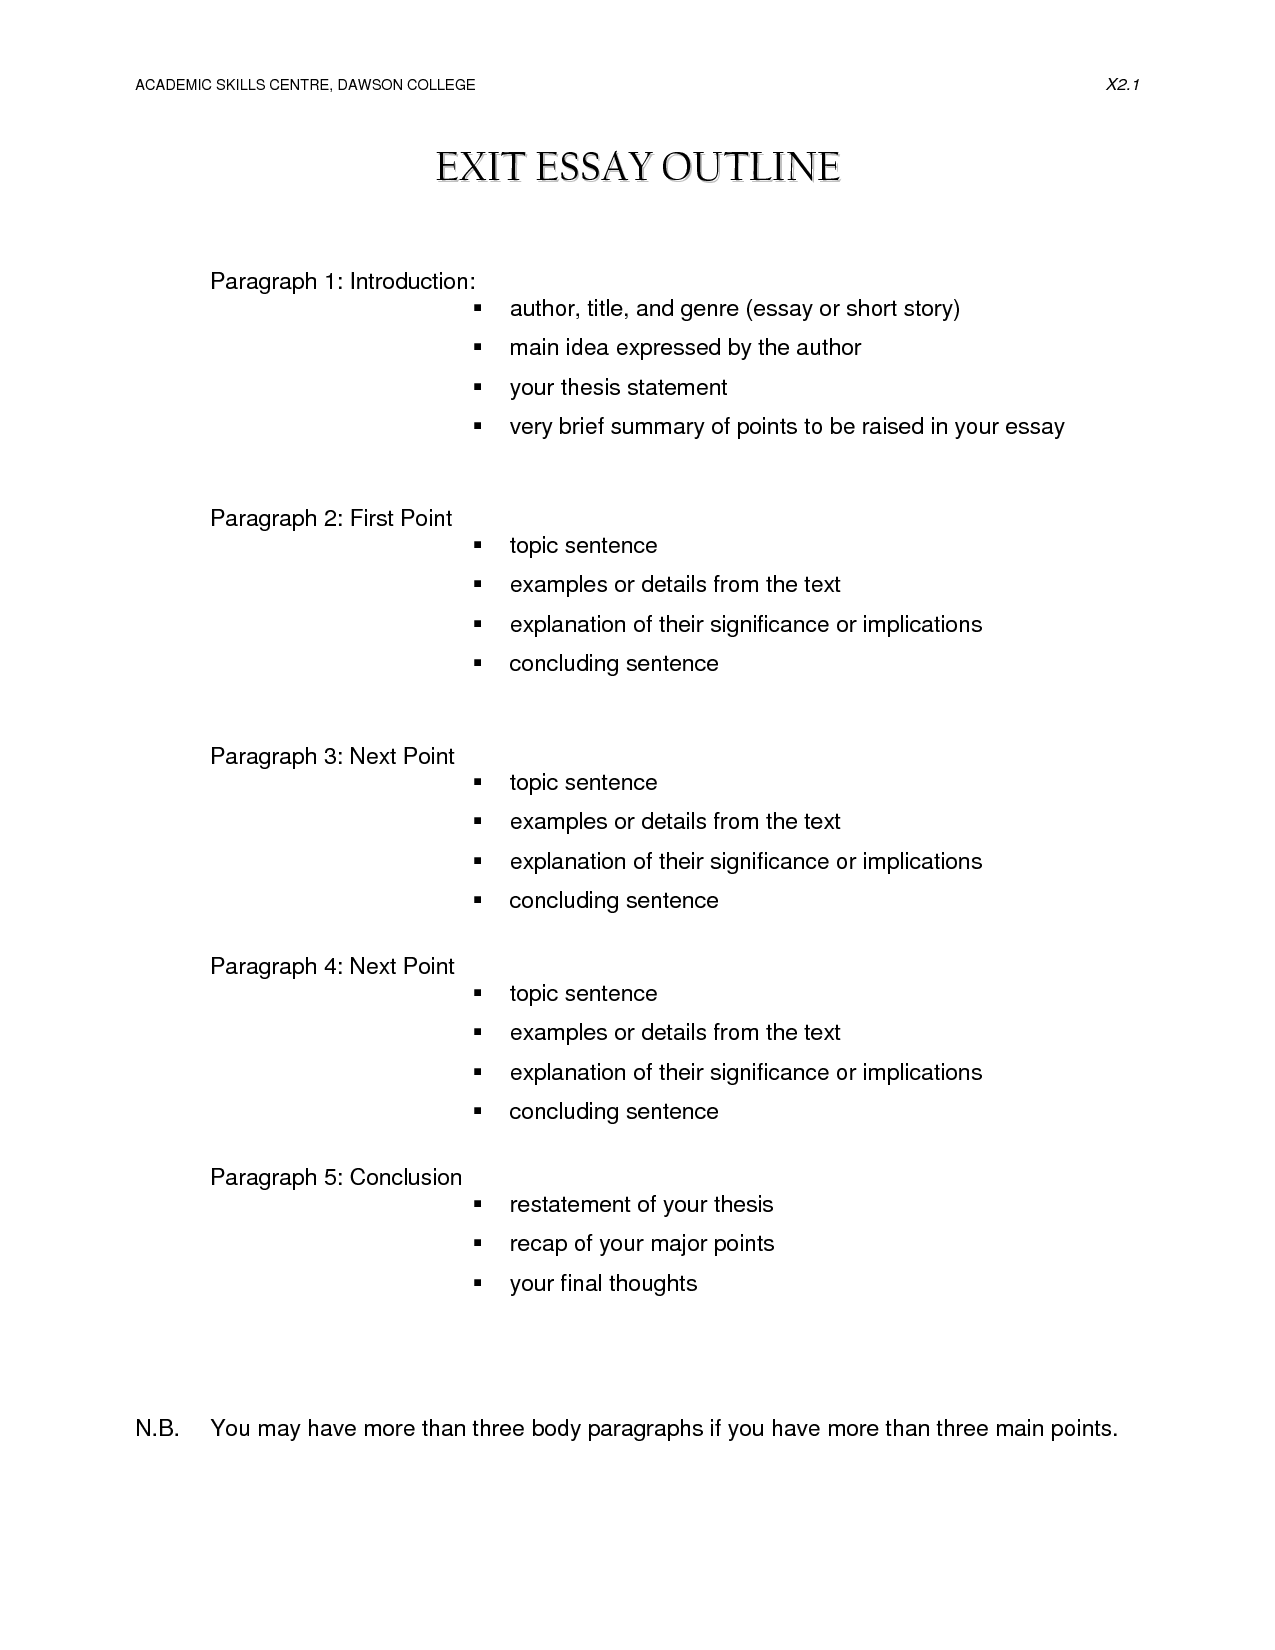 Research Paper Format Outline  Google Search  Teaching